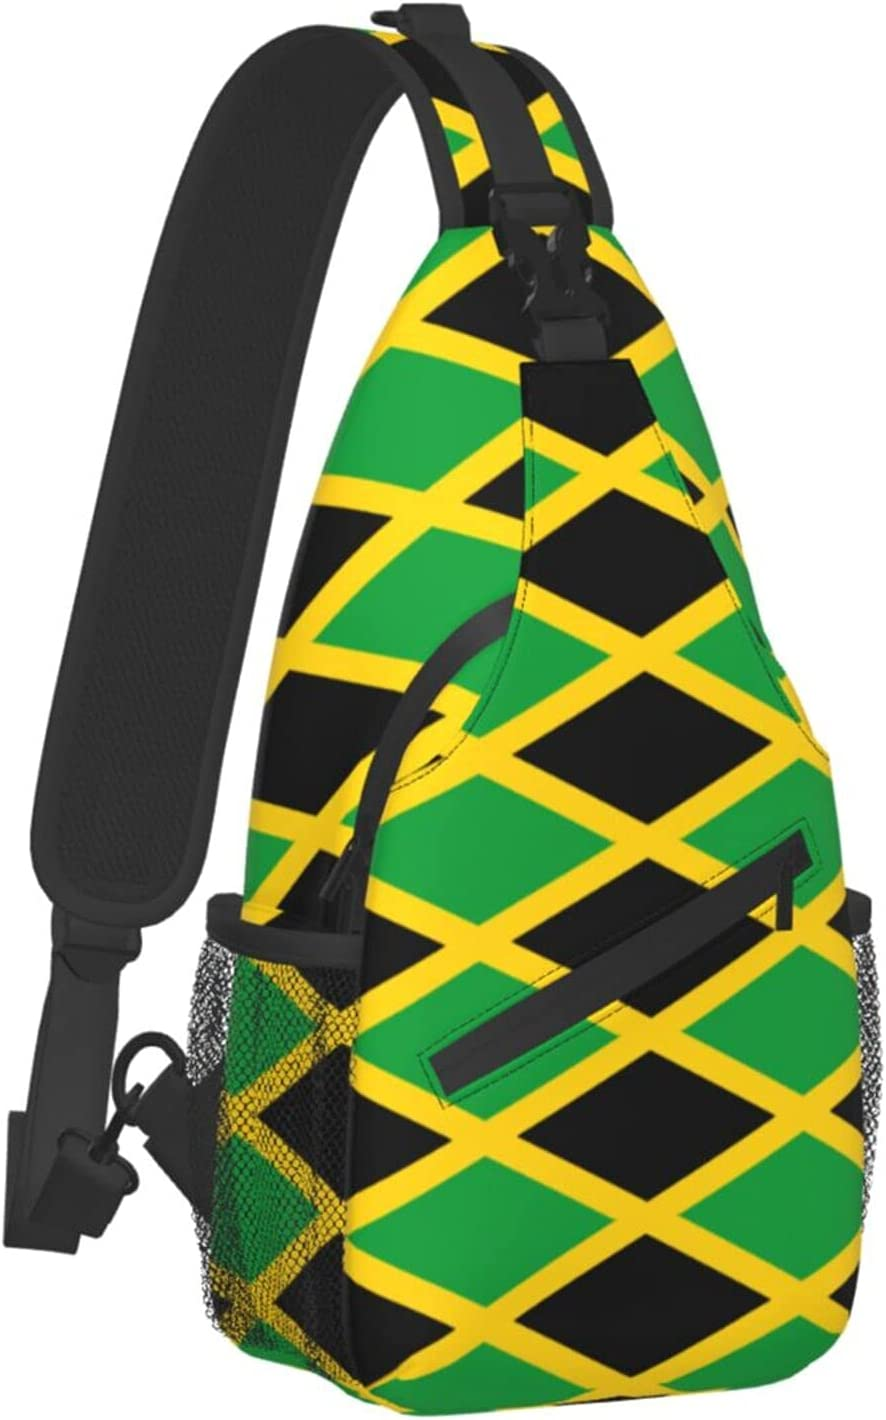 Sling Backpack Travel Hiking Daypack Dedication Jamaica Caribbean Year-end annual account Flag Rope